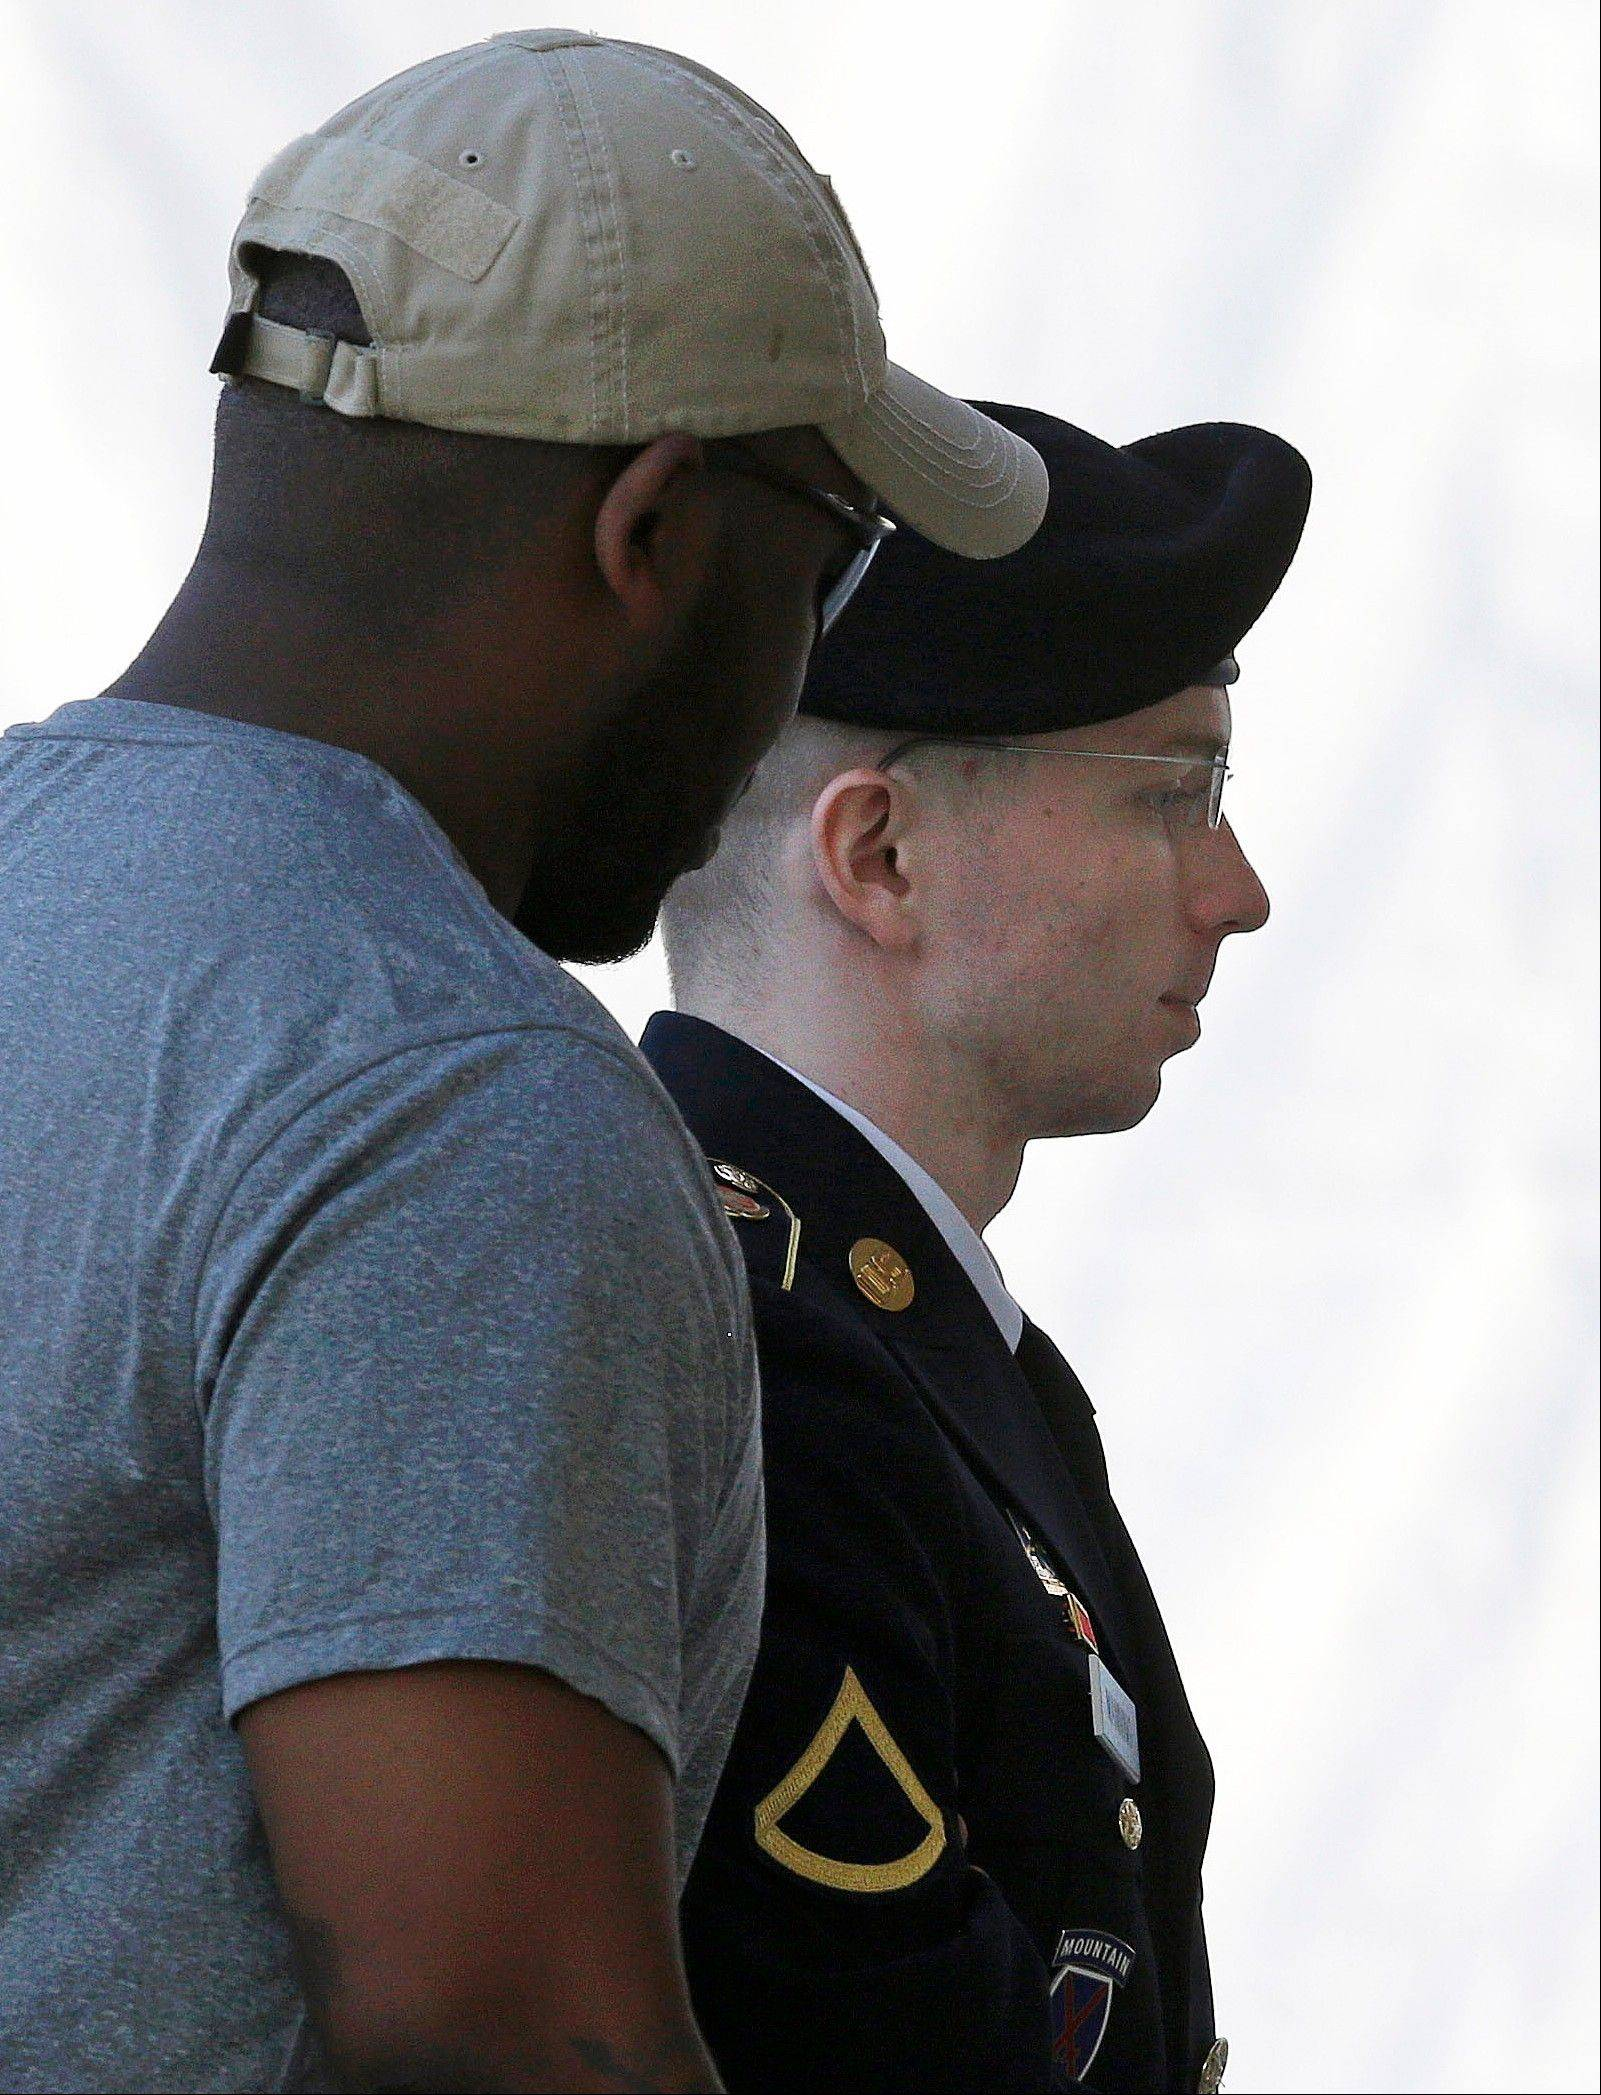 Army Pfc. Bradley Manning, right, is escorted into a courthouse at Fort Meade, Md., Thursday, July 18, 2013, before a court martial hearing. A military judge refused Thursday to dismiss the most serious charge against Manning, the Army private who gave reams of classified information to the anti-secrecy website WikiLeaks.